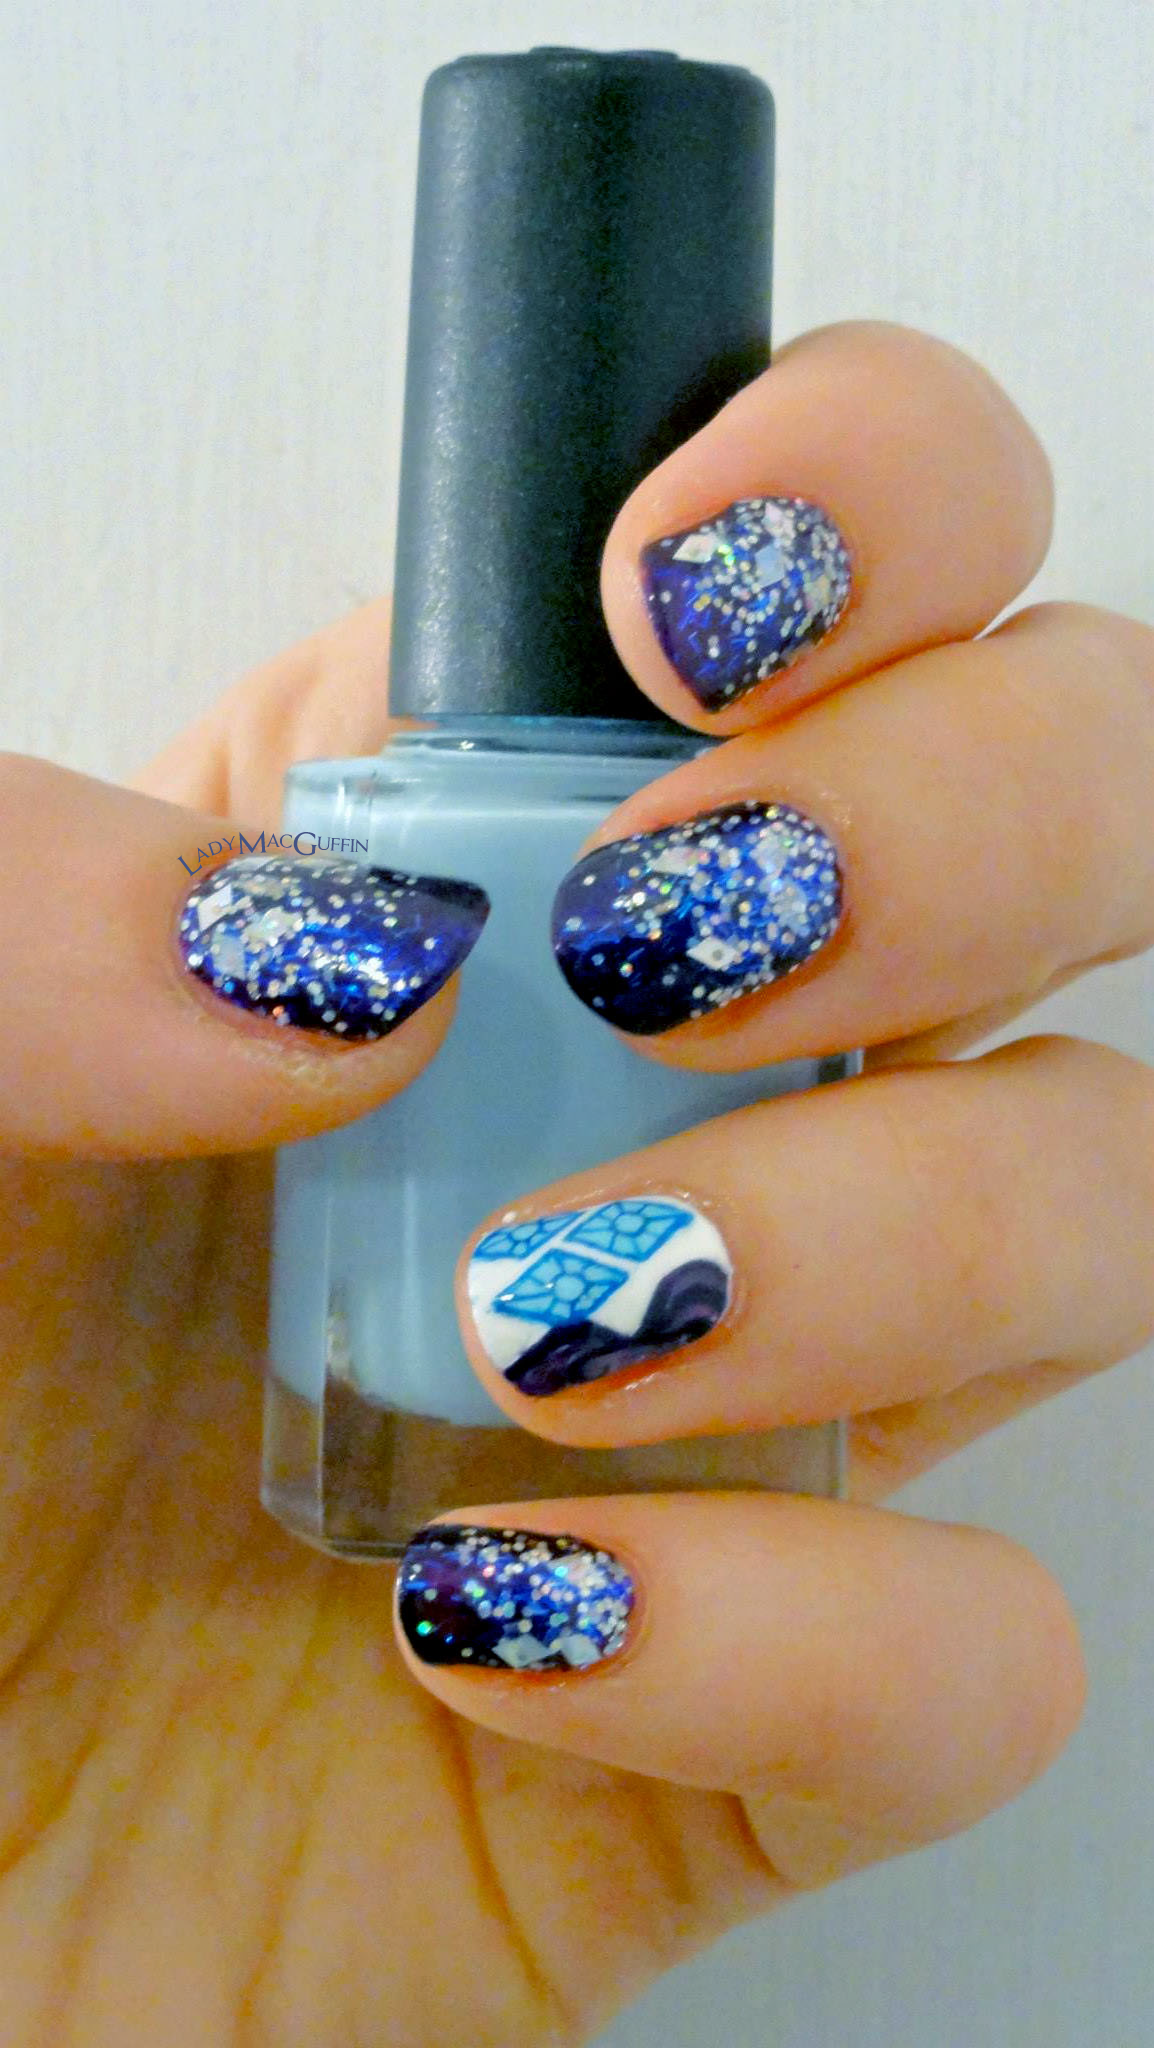 Rarity-inspired nail art by LadyMaGuffin #rarity #mlp #nailart